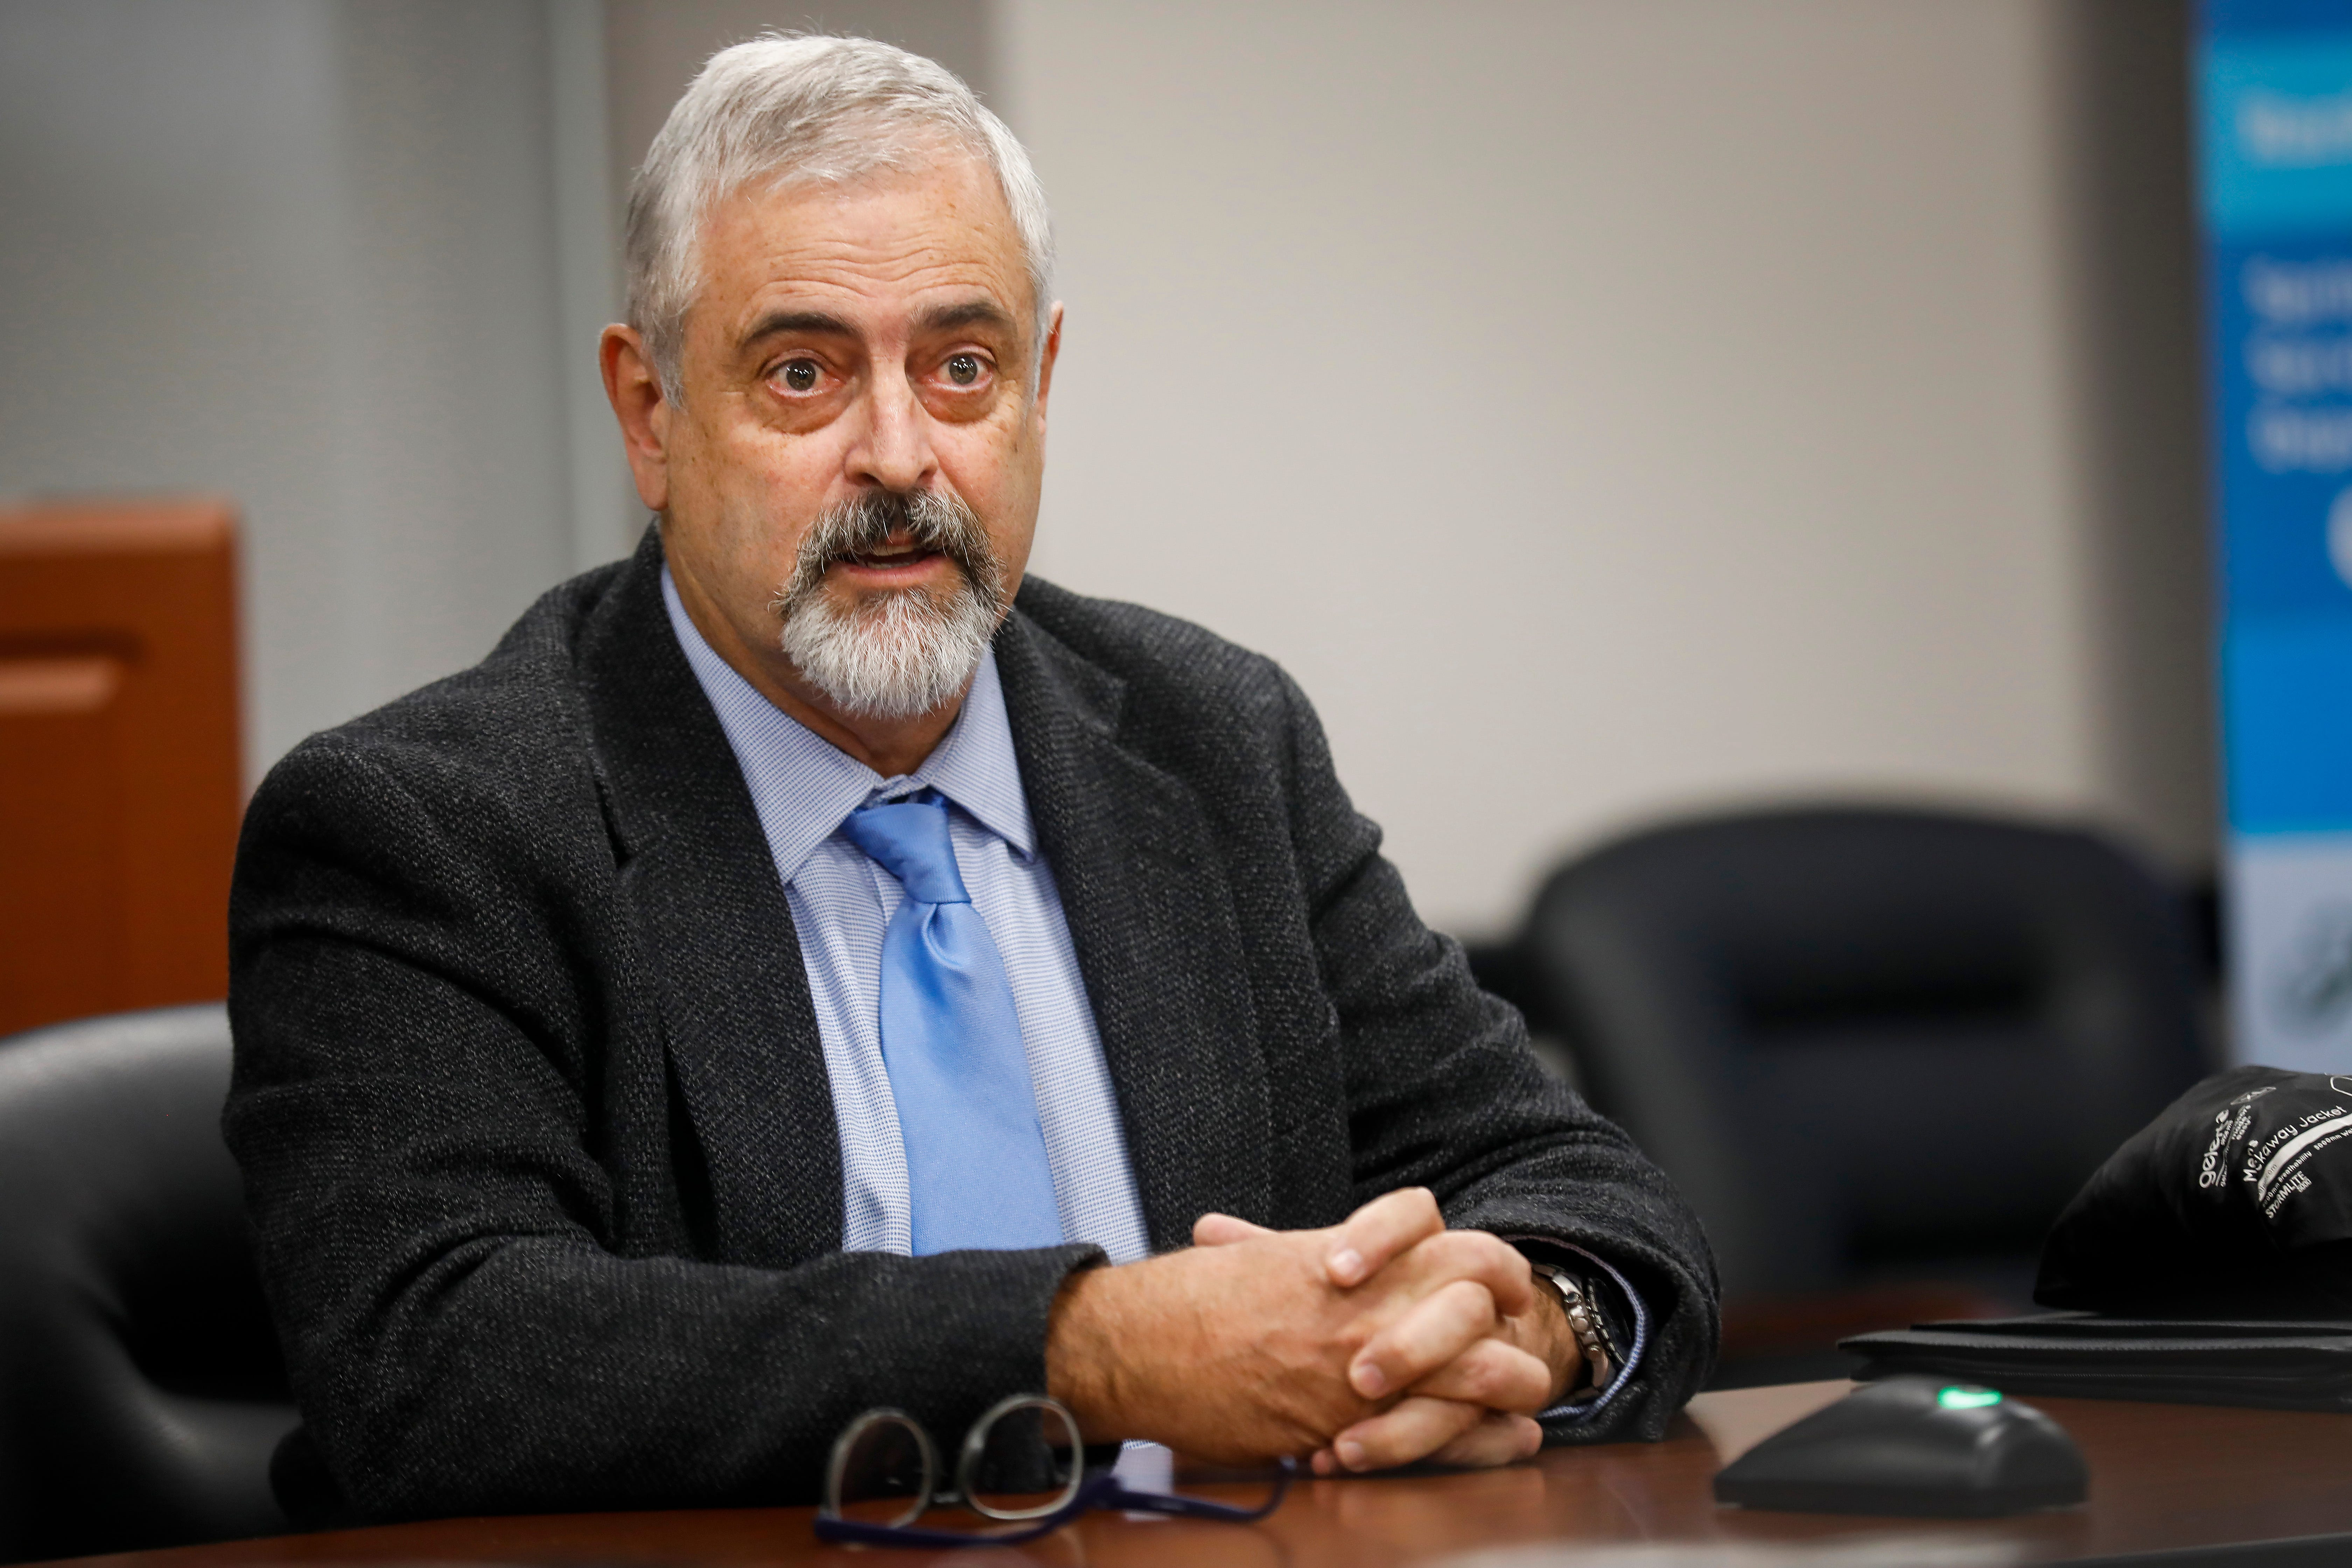 Kevin Evans speaks during an interview for the vacant seat on the Springfield City Council on the council on Thursday, Oct. 10, 2018.